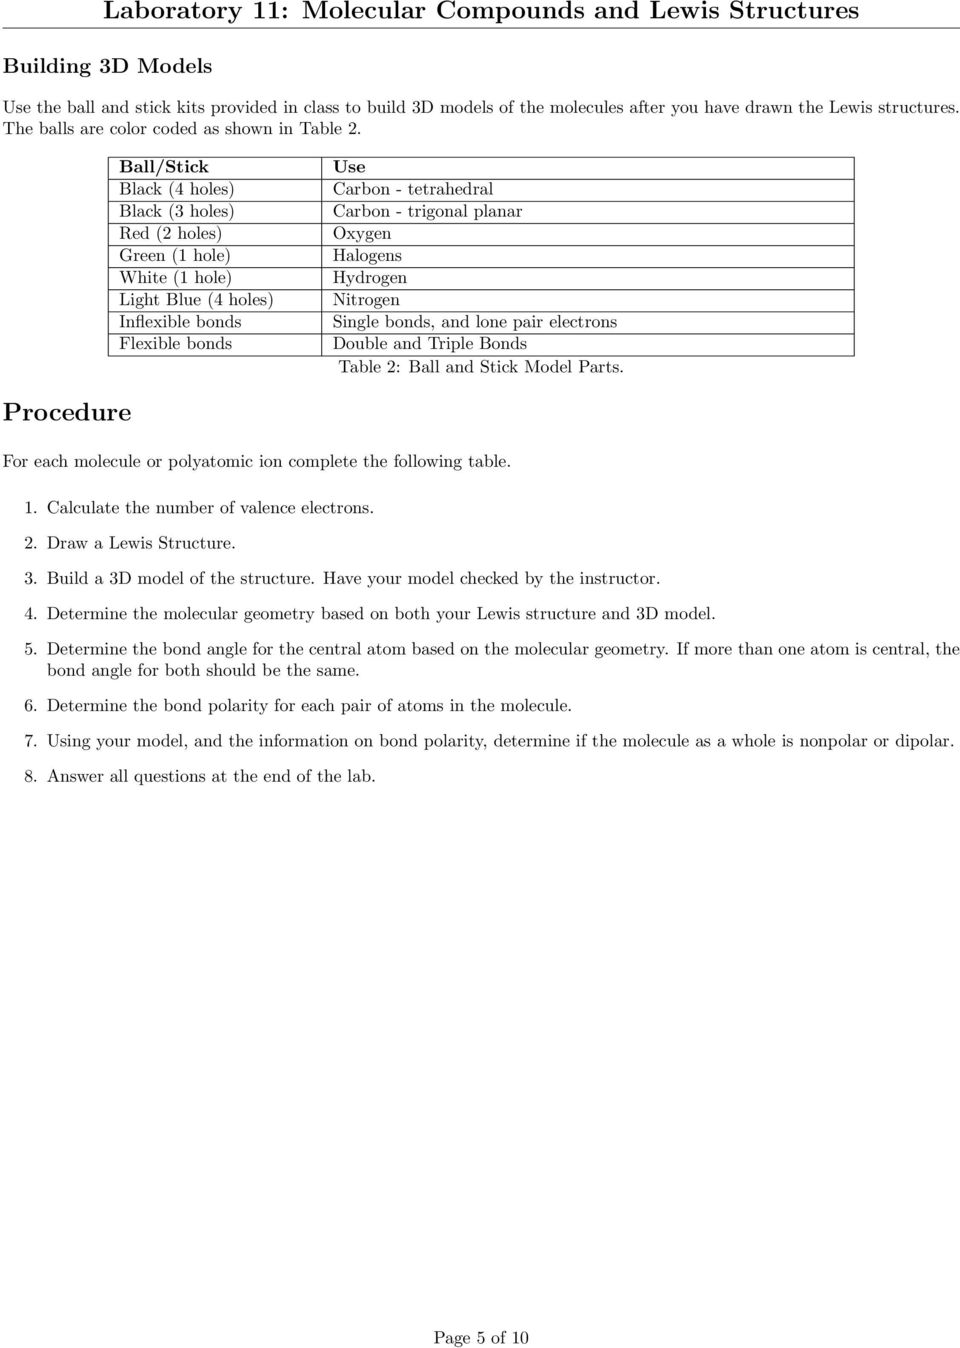 Laboratory 11: Molecular Compounds and Lewis Structures - PDF